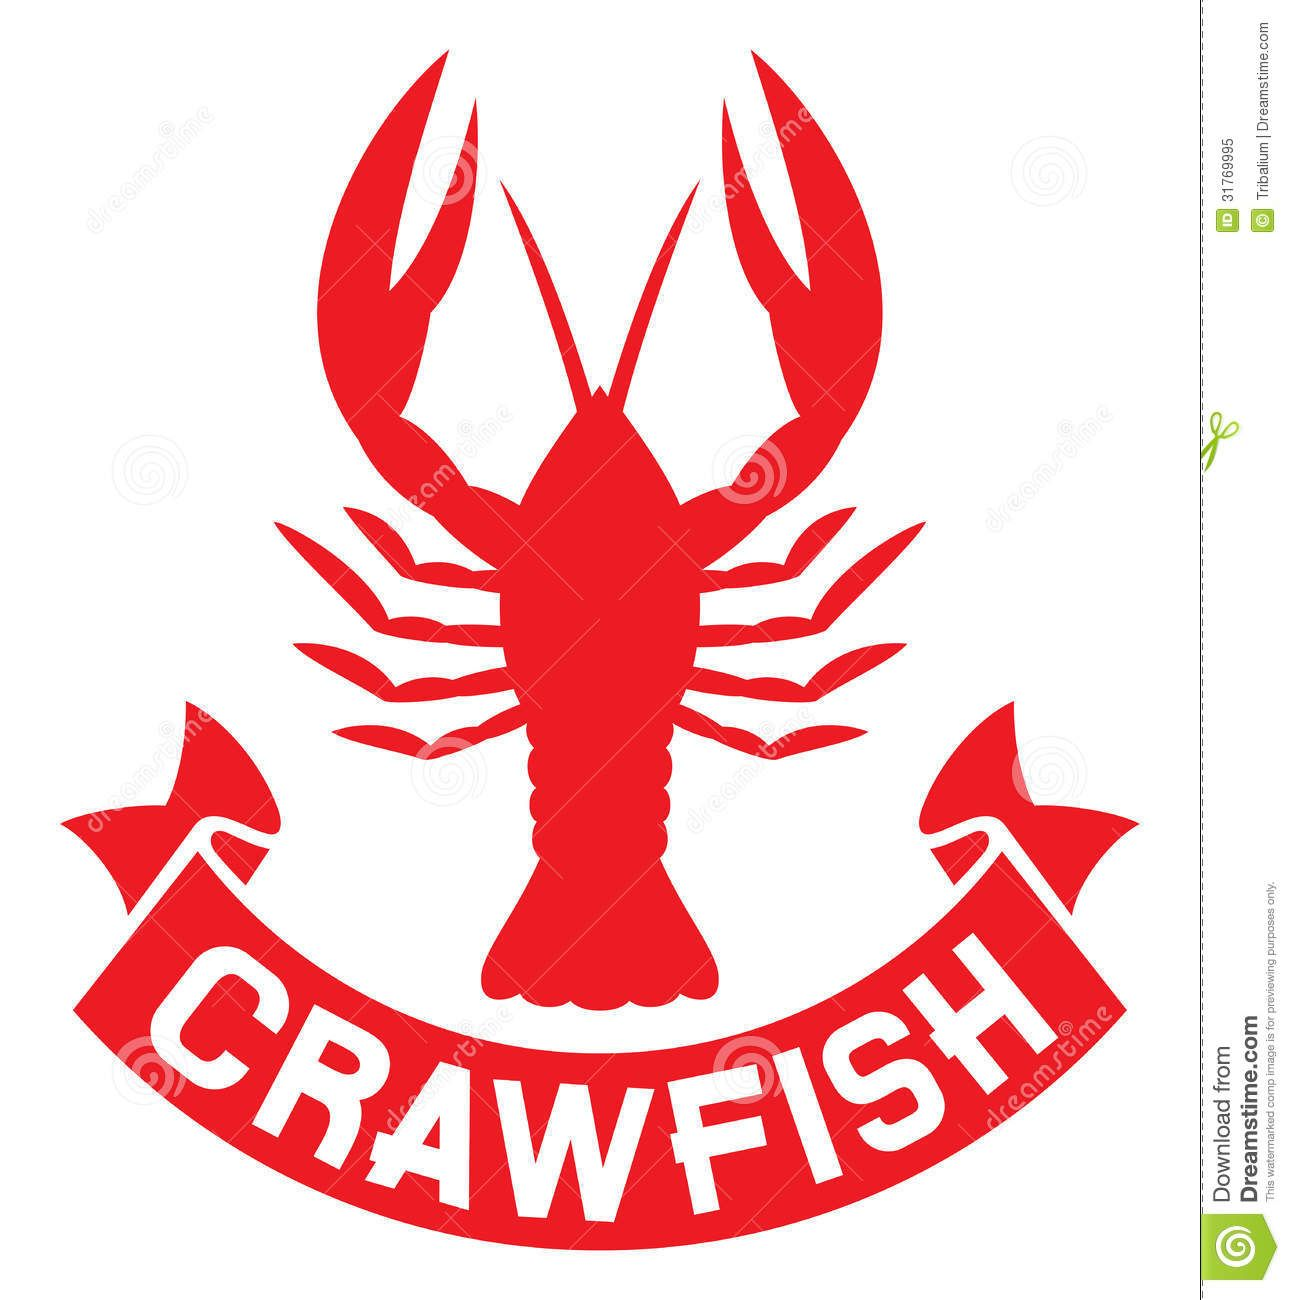 lobster silhouette clip art at getdrawings com free for personal rh getdrawings com crawfish clipart vector free download crawfish clipart black and white